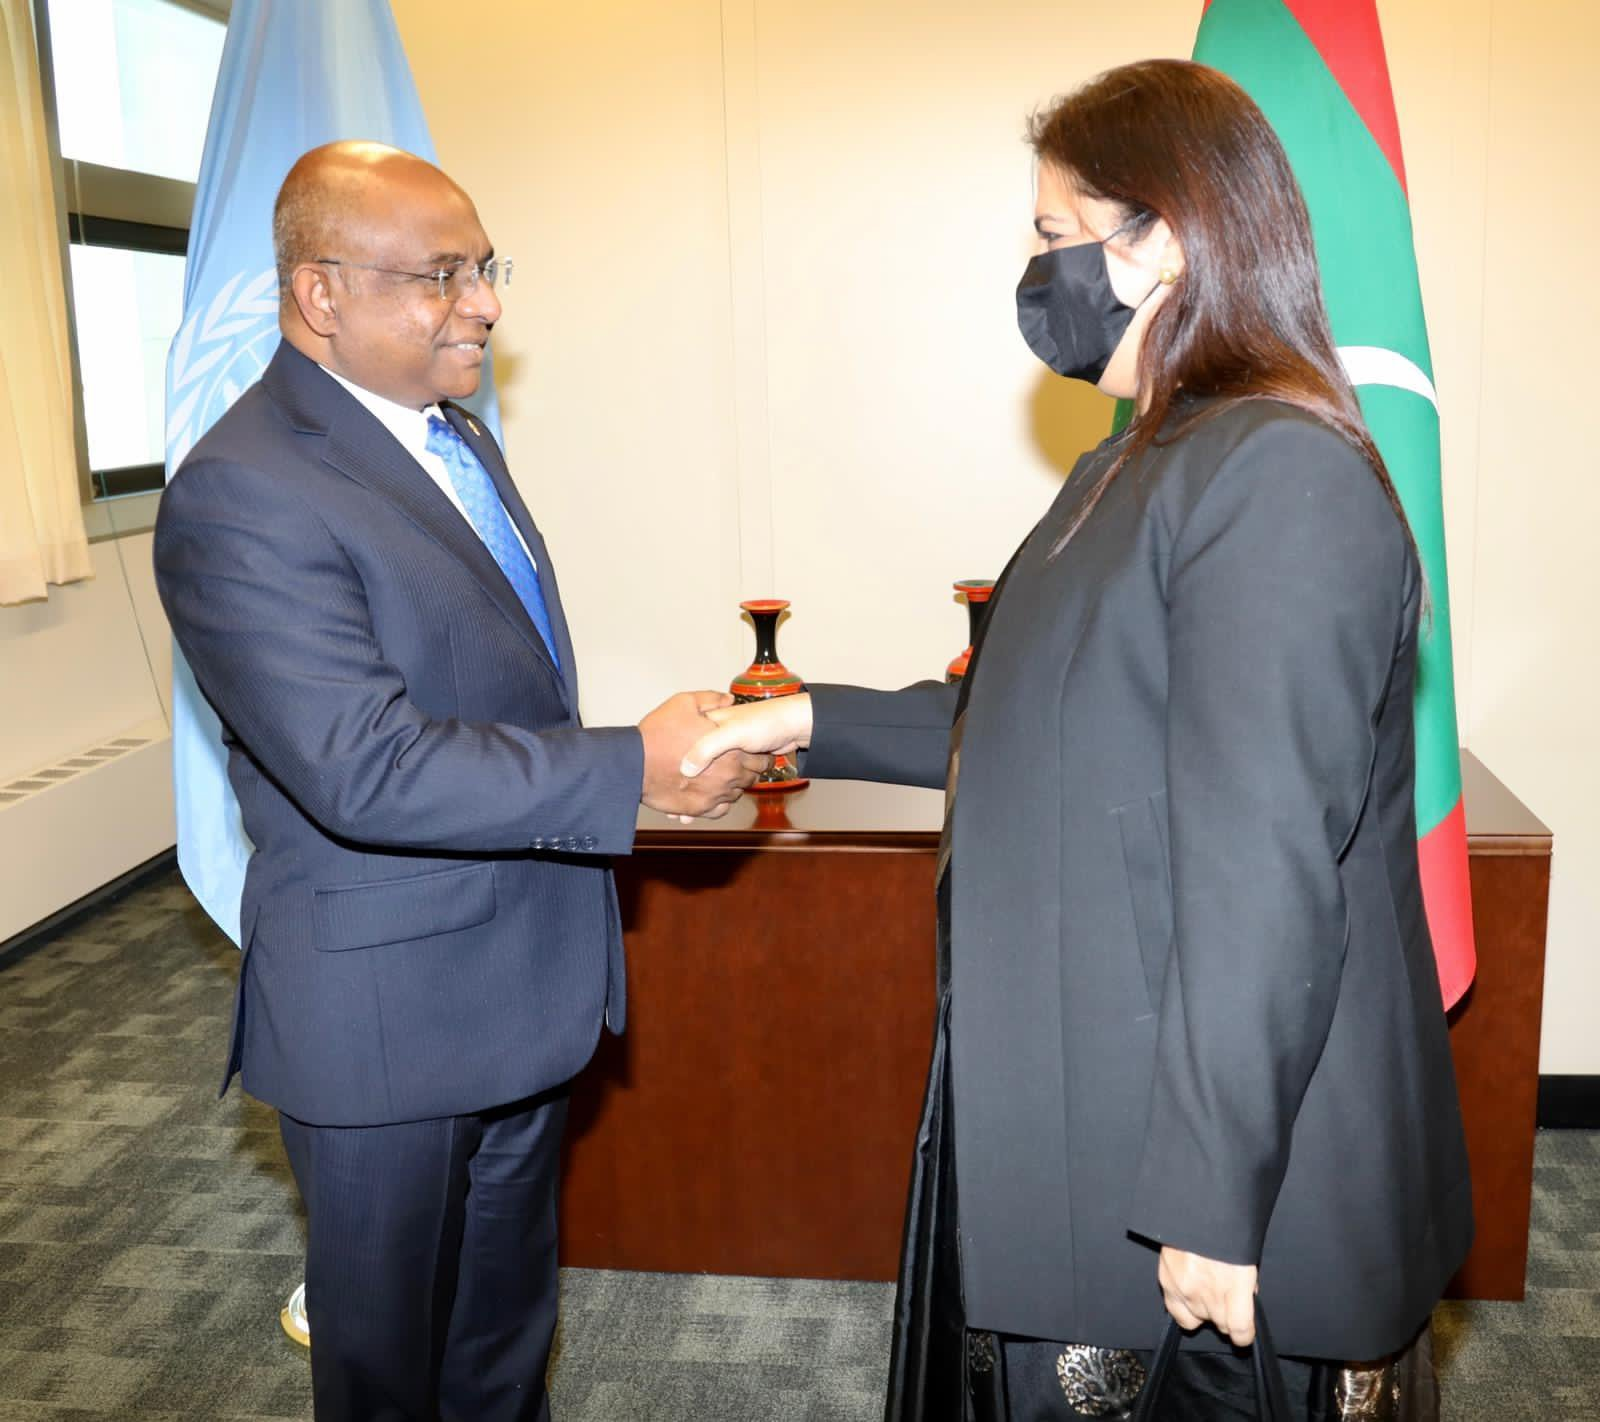 Minister of State for External Affairs, Meenakashi Lekhi meets President elect of 76th UNGA, Abdulla Shahid in New York,